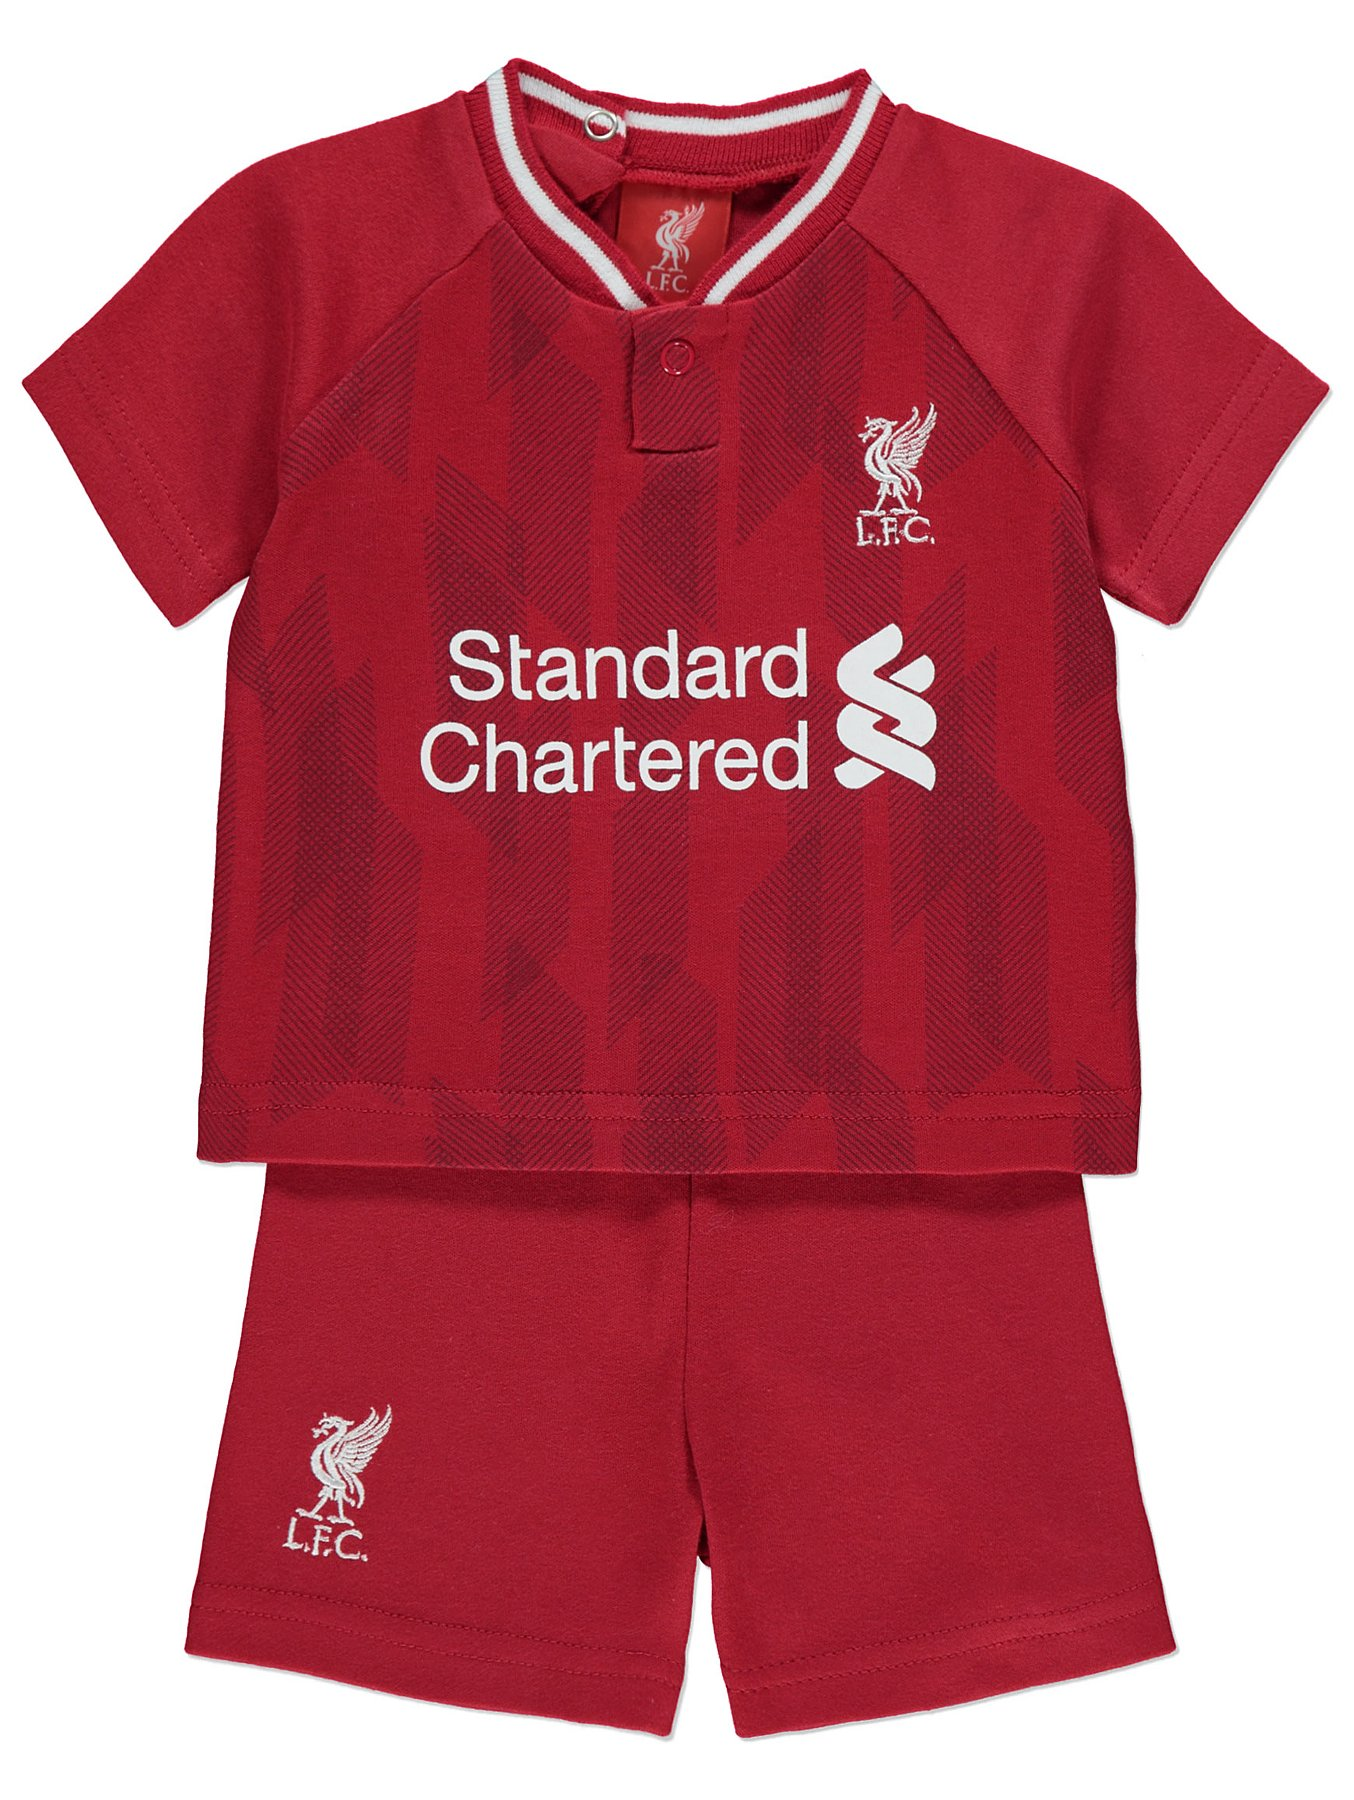 62d57bd51 Official Liverpool FC T-Shirt and Shorts Outfit. Reset